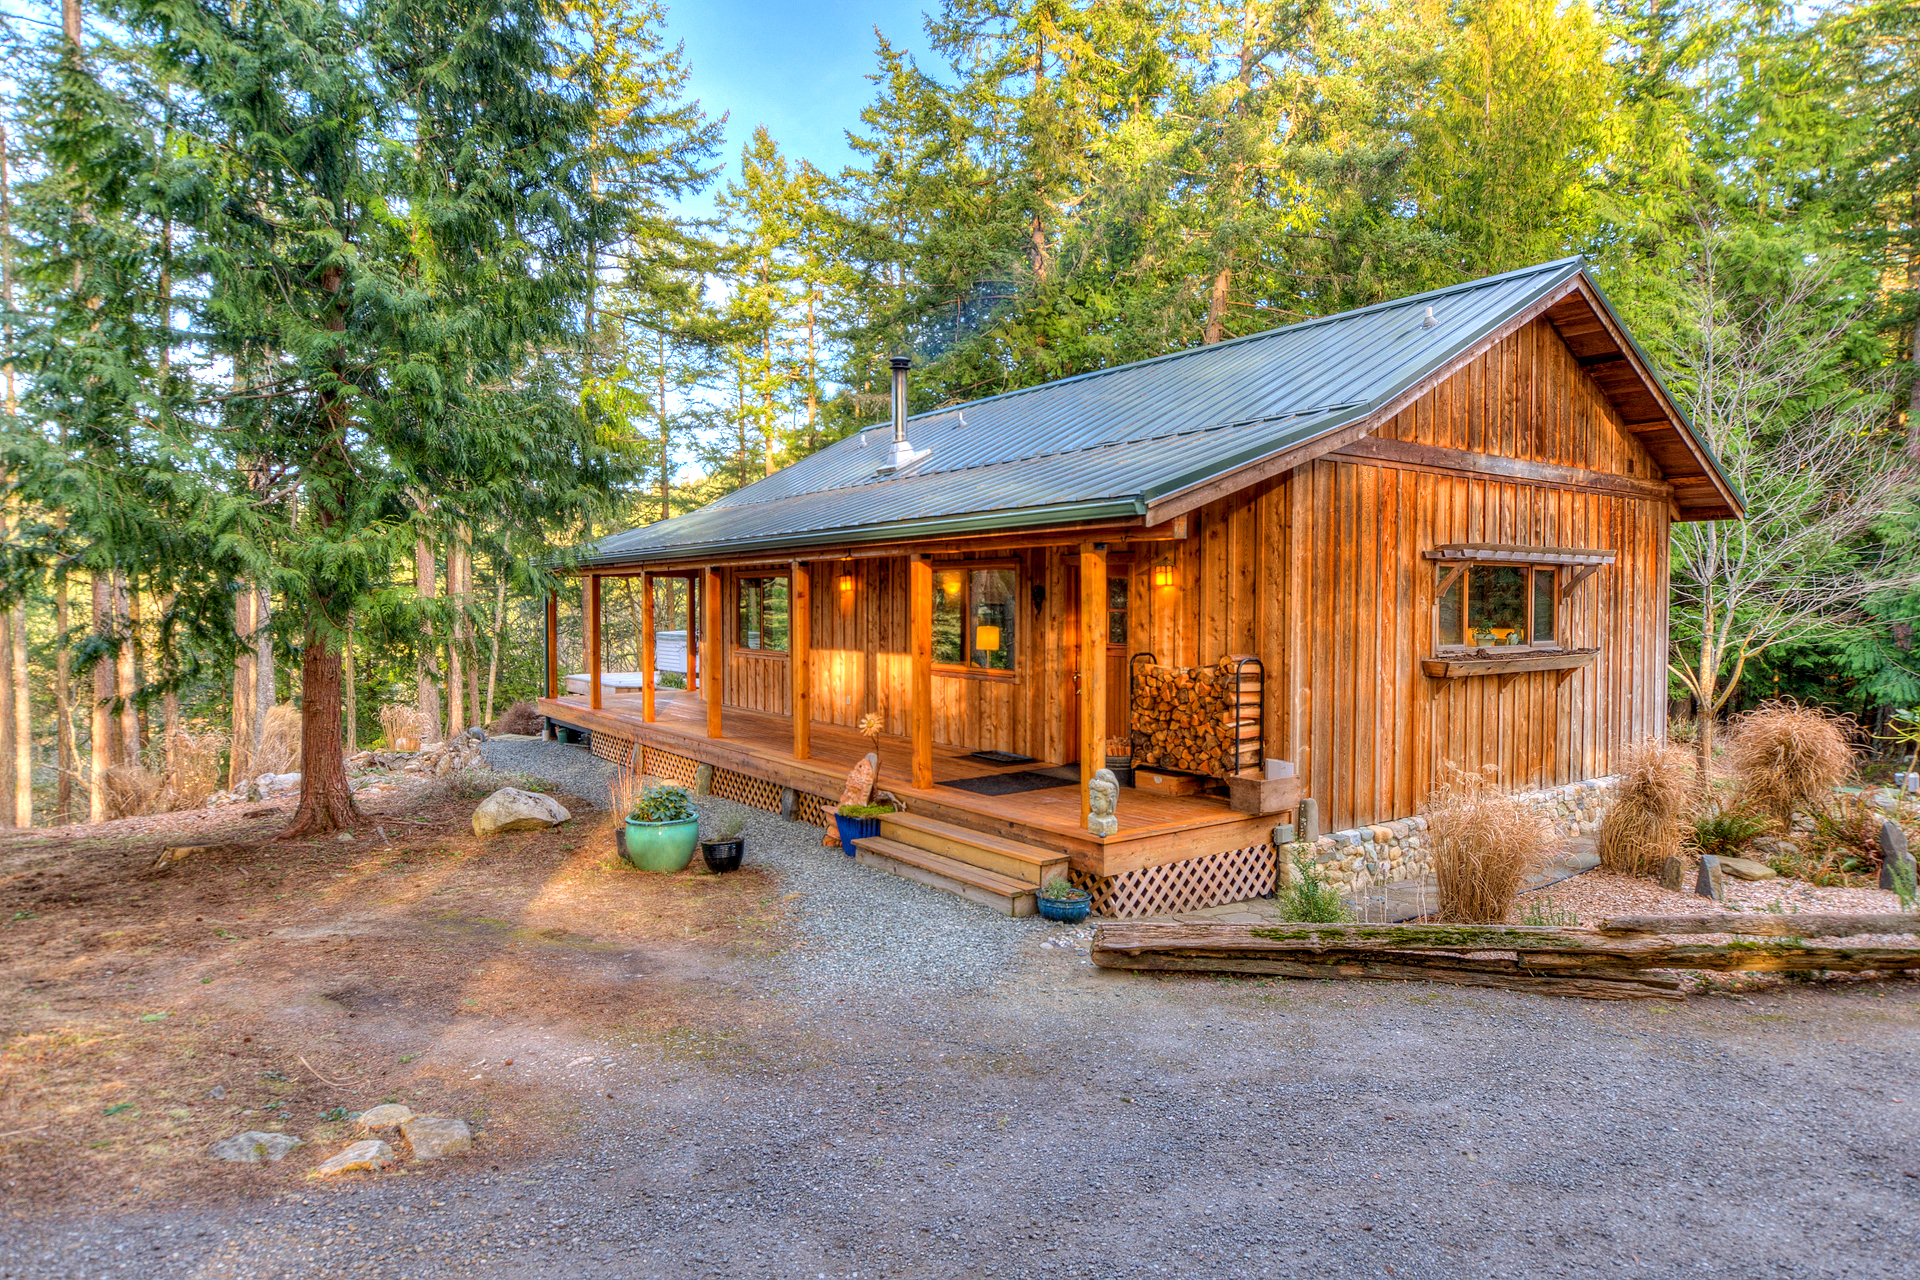 A wooden cabin in the woods with a large porch